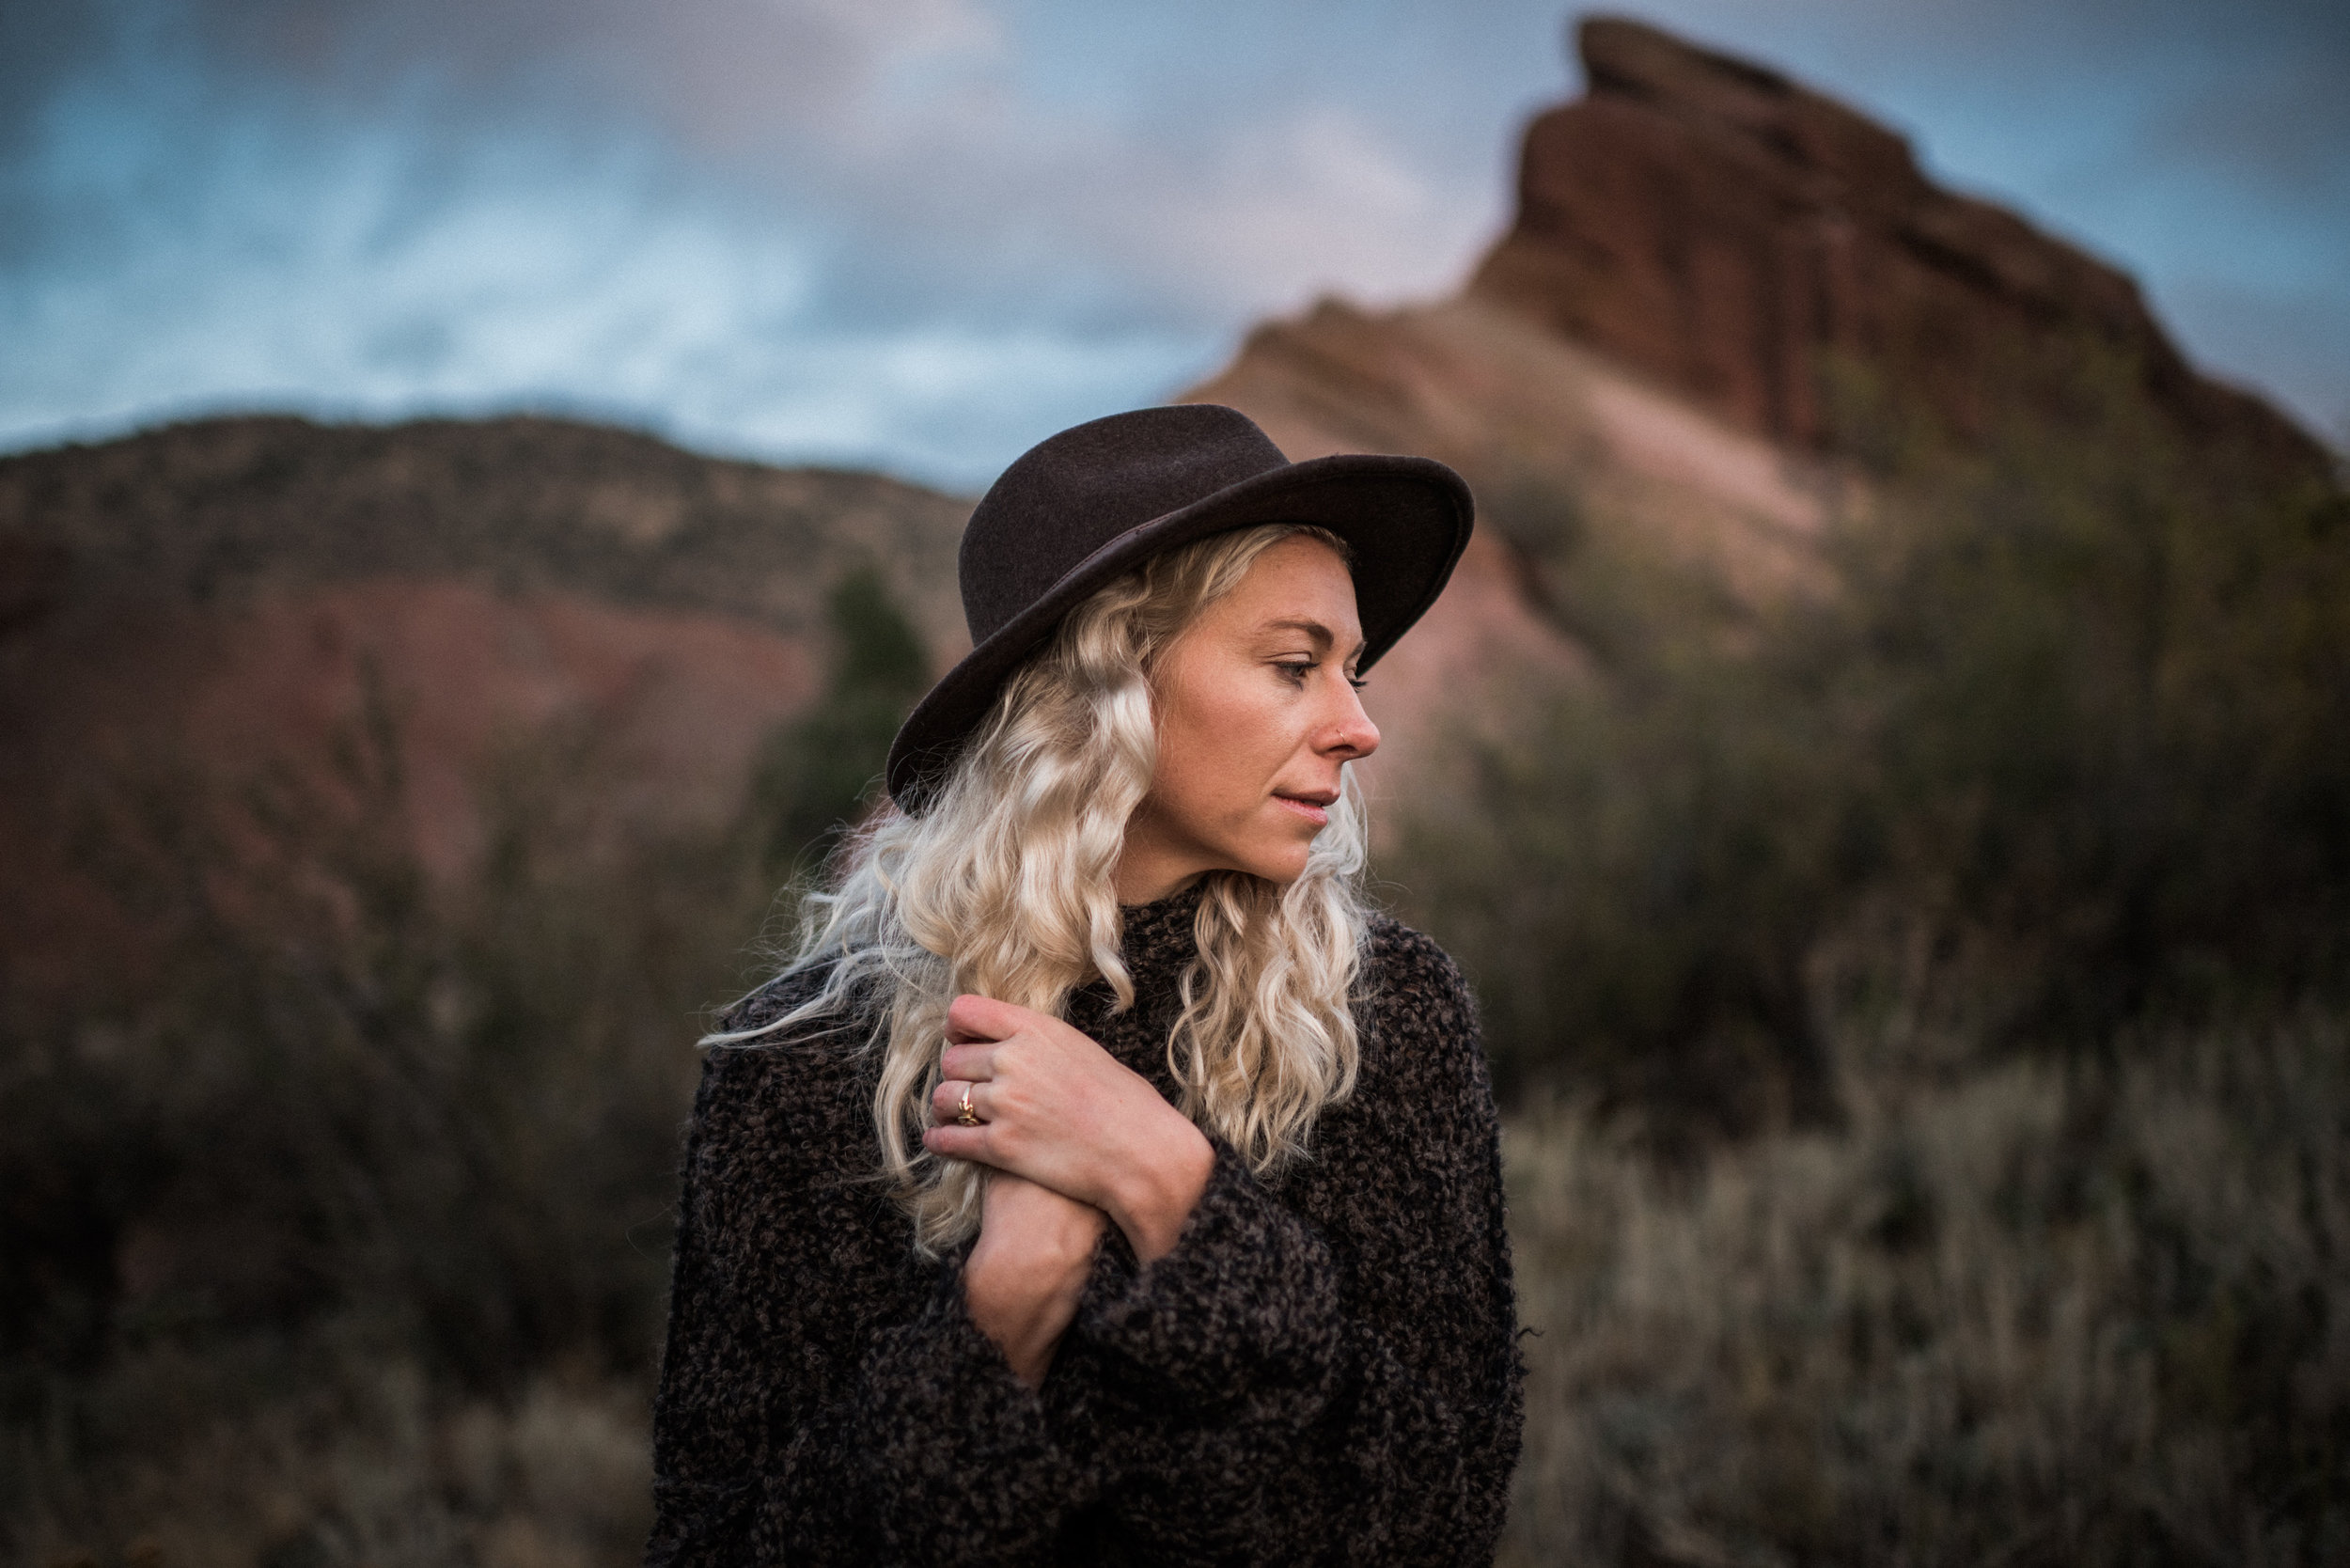 Kate_Sunrise_RedRocks_TaraShupe_DSC_4267.jpg